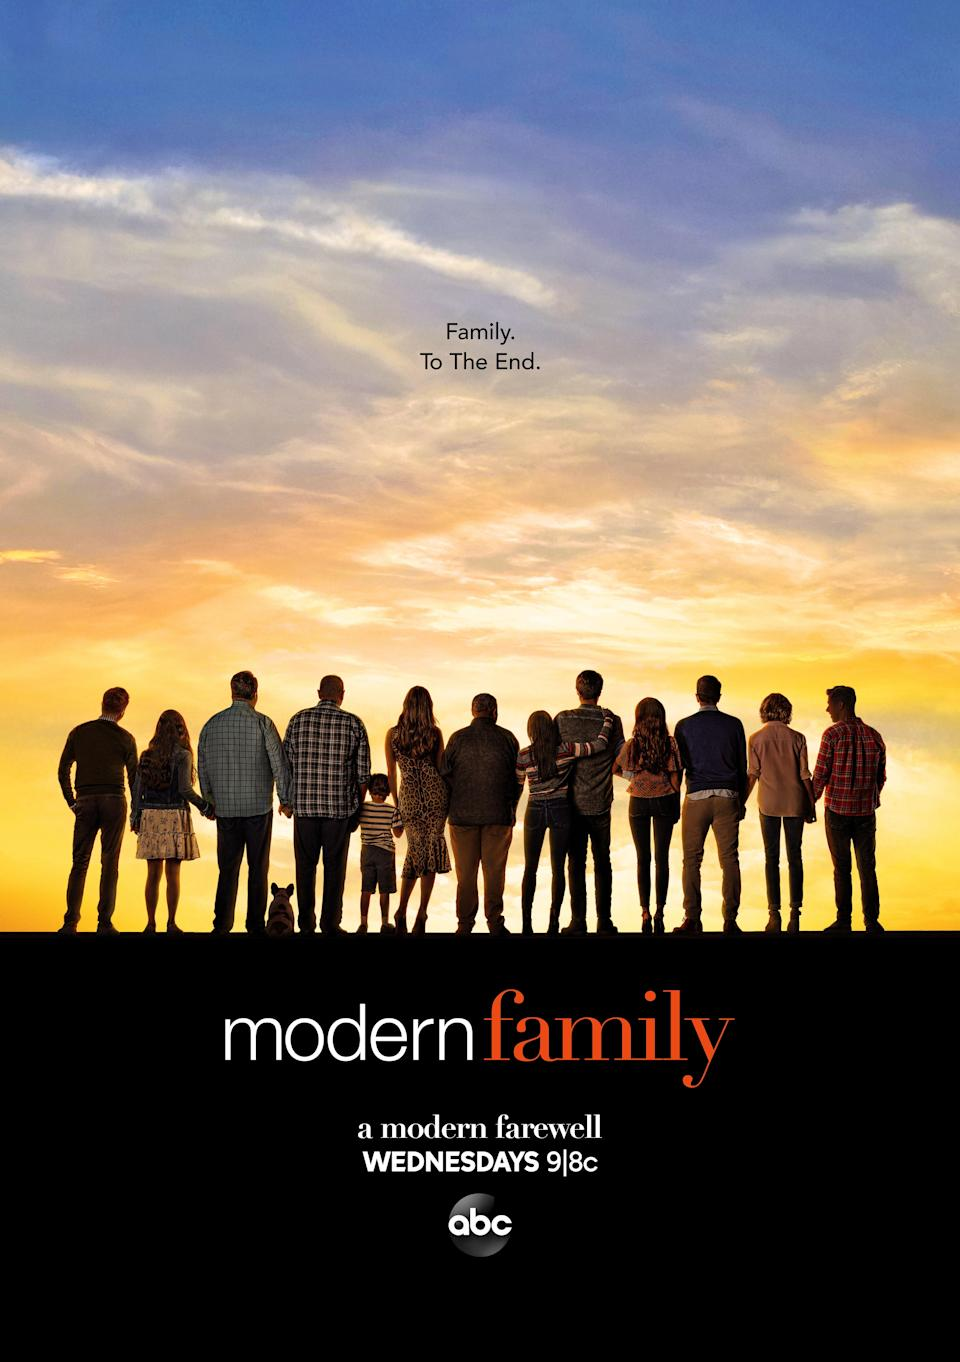 After 11 years of groundbreaking TV, <em>Modern Family</em> is signing off. It's hard to imagine a time with the Dunphys <em>weren't</em> on our TV screens, but alas, all things must come to an end sometime. Be sure to give it proper reverence—and remember, you'll always have reruns. <em>9 p.m. ET on ABC.</em>